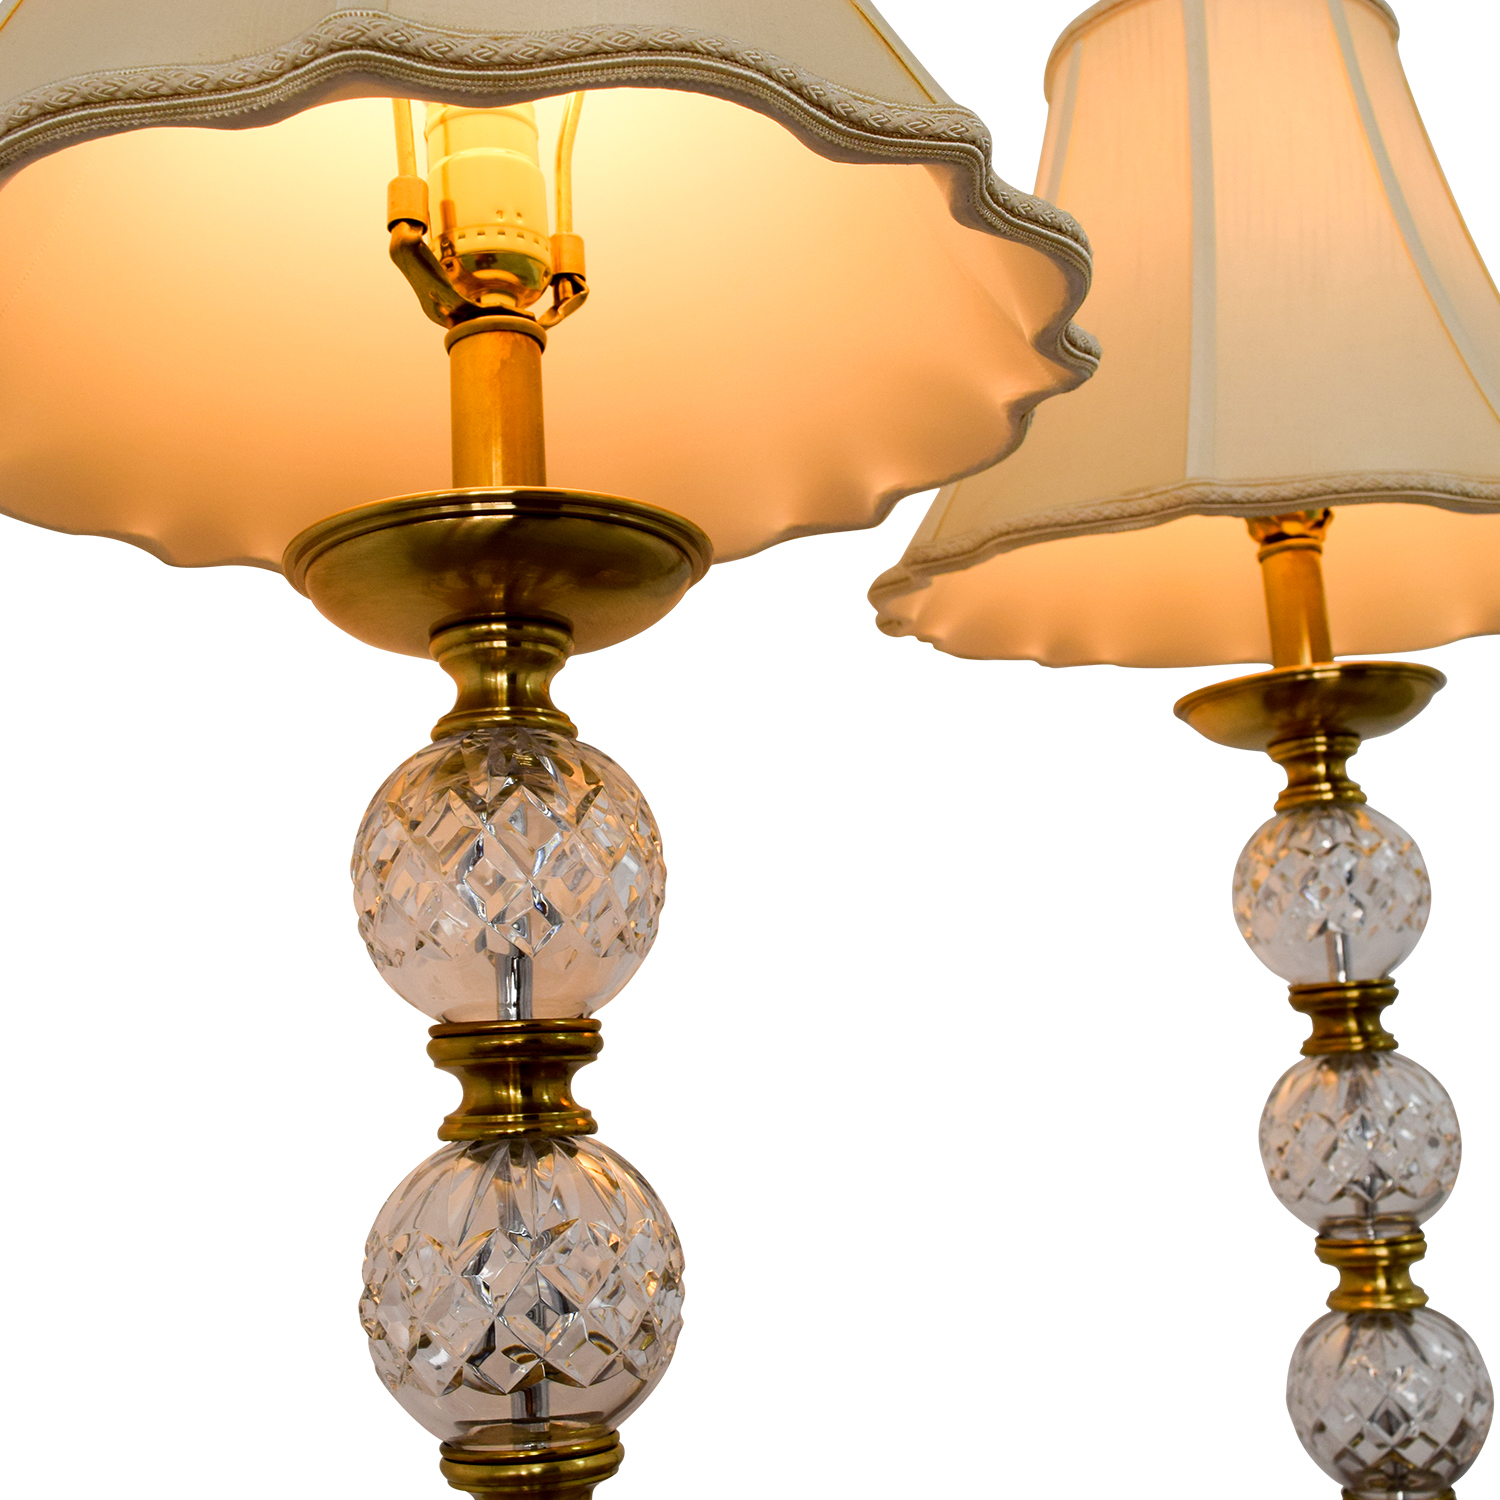 56 off waterford waterford lismore buffet lamp decor waterford waterford lismore buffet lamp discount arubaitofo Gallery